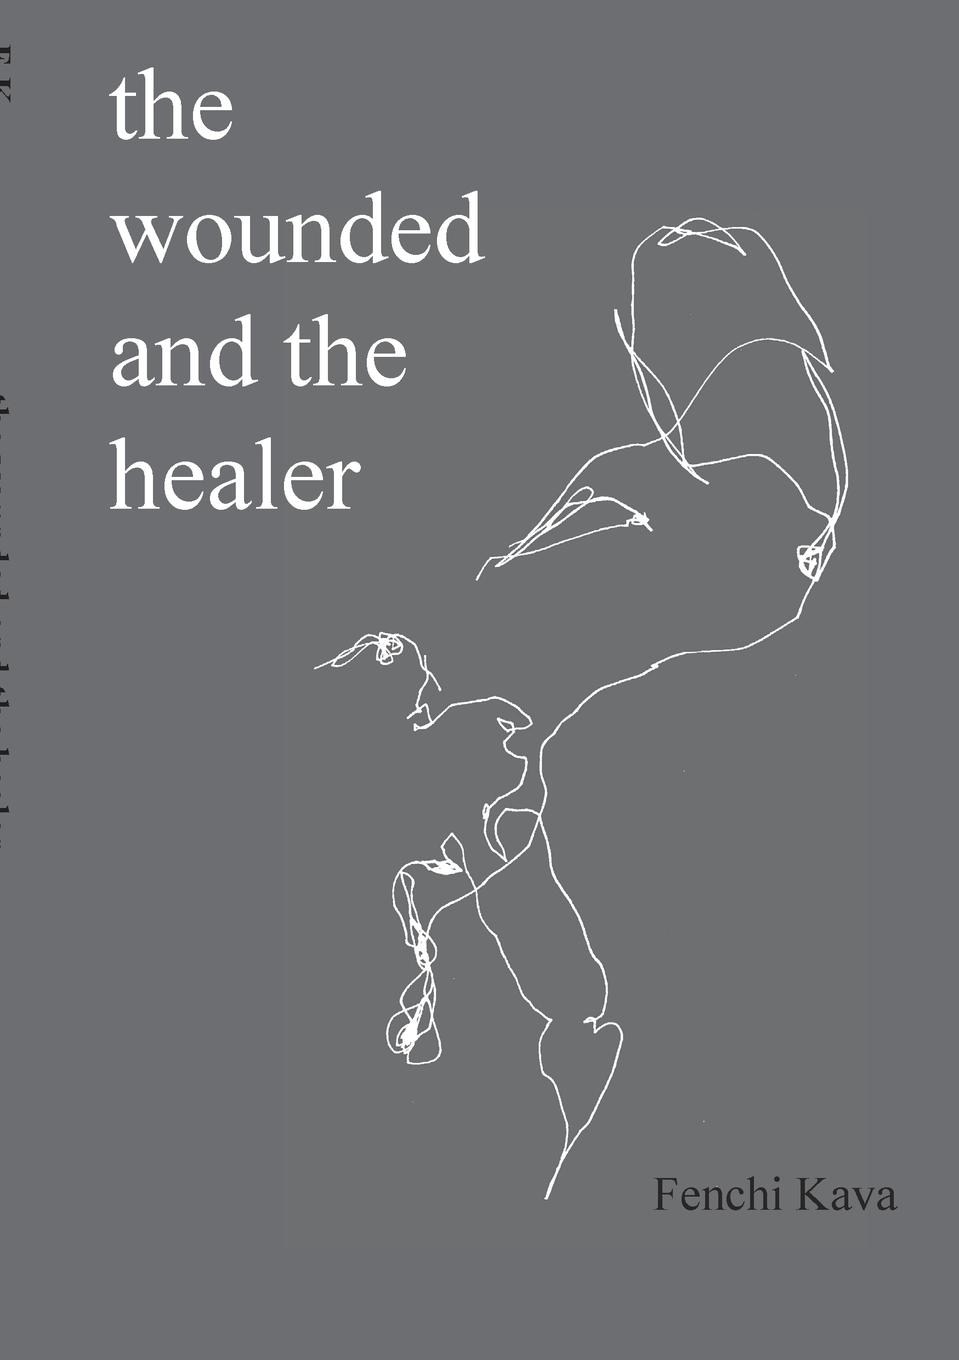 цена на Fenchi Kava The wounded and the healer